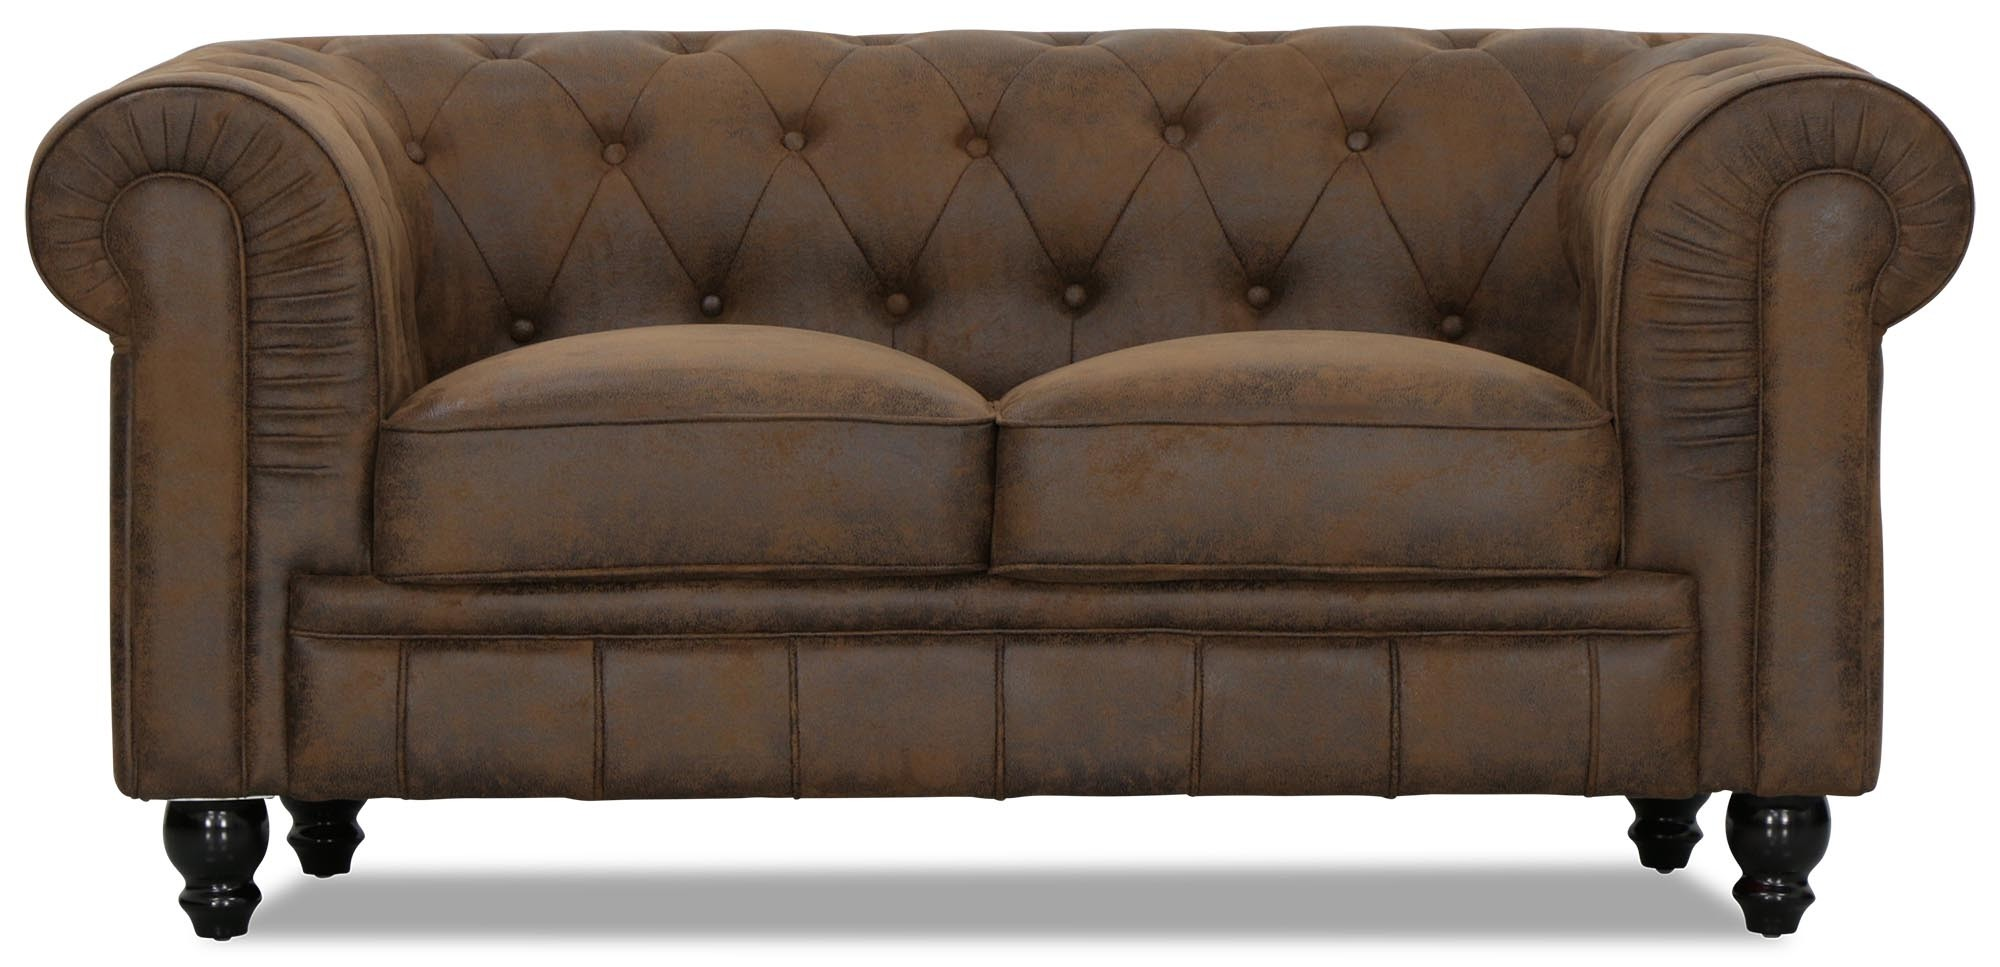 Benjamin Classical 2 Seater Vintage Pu Leather Sofa Furniture